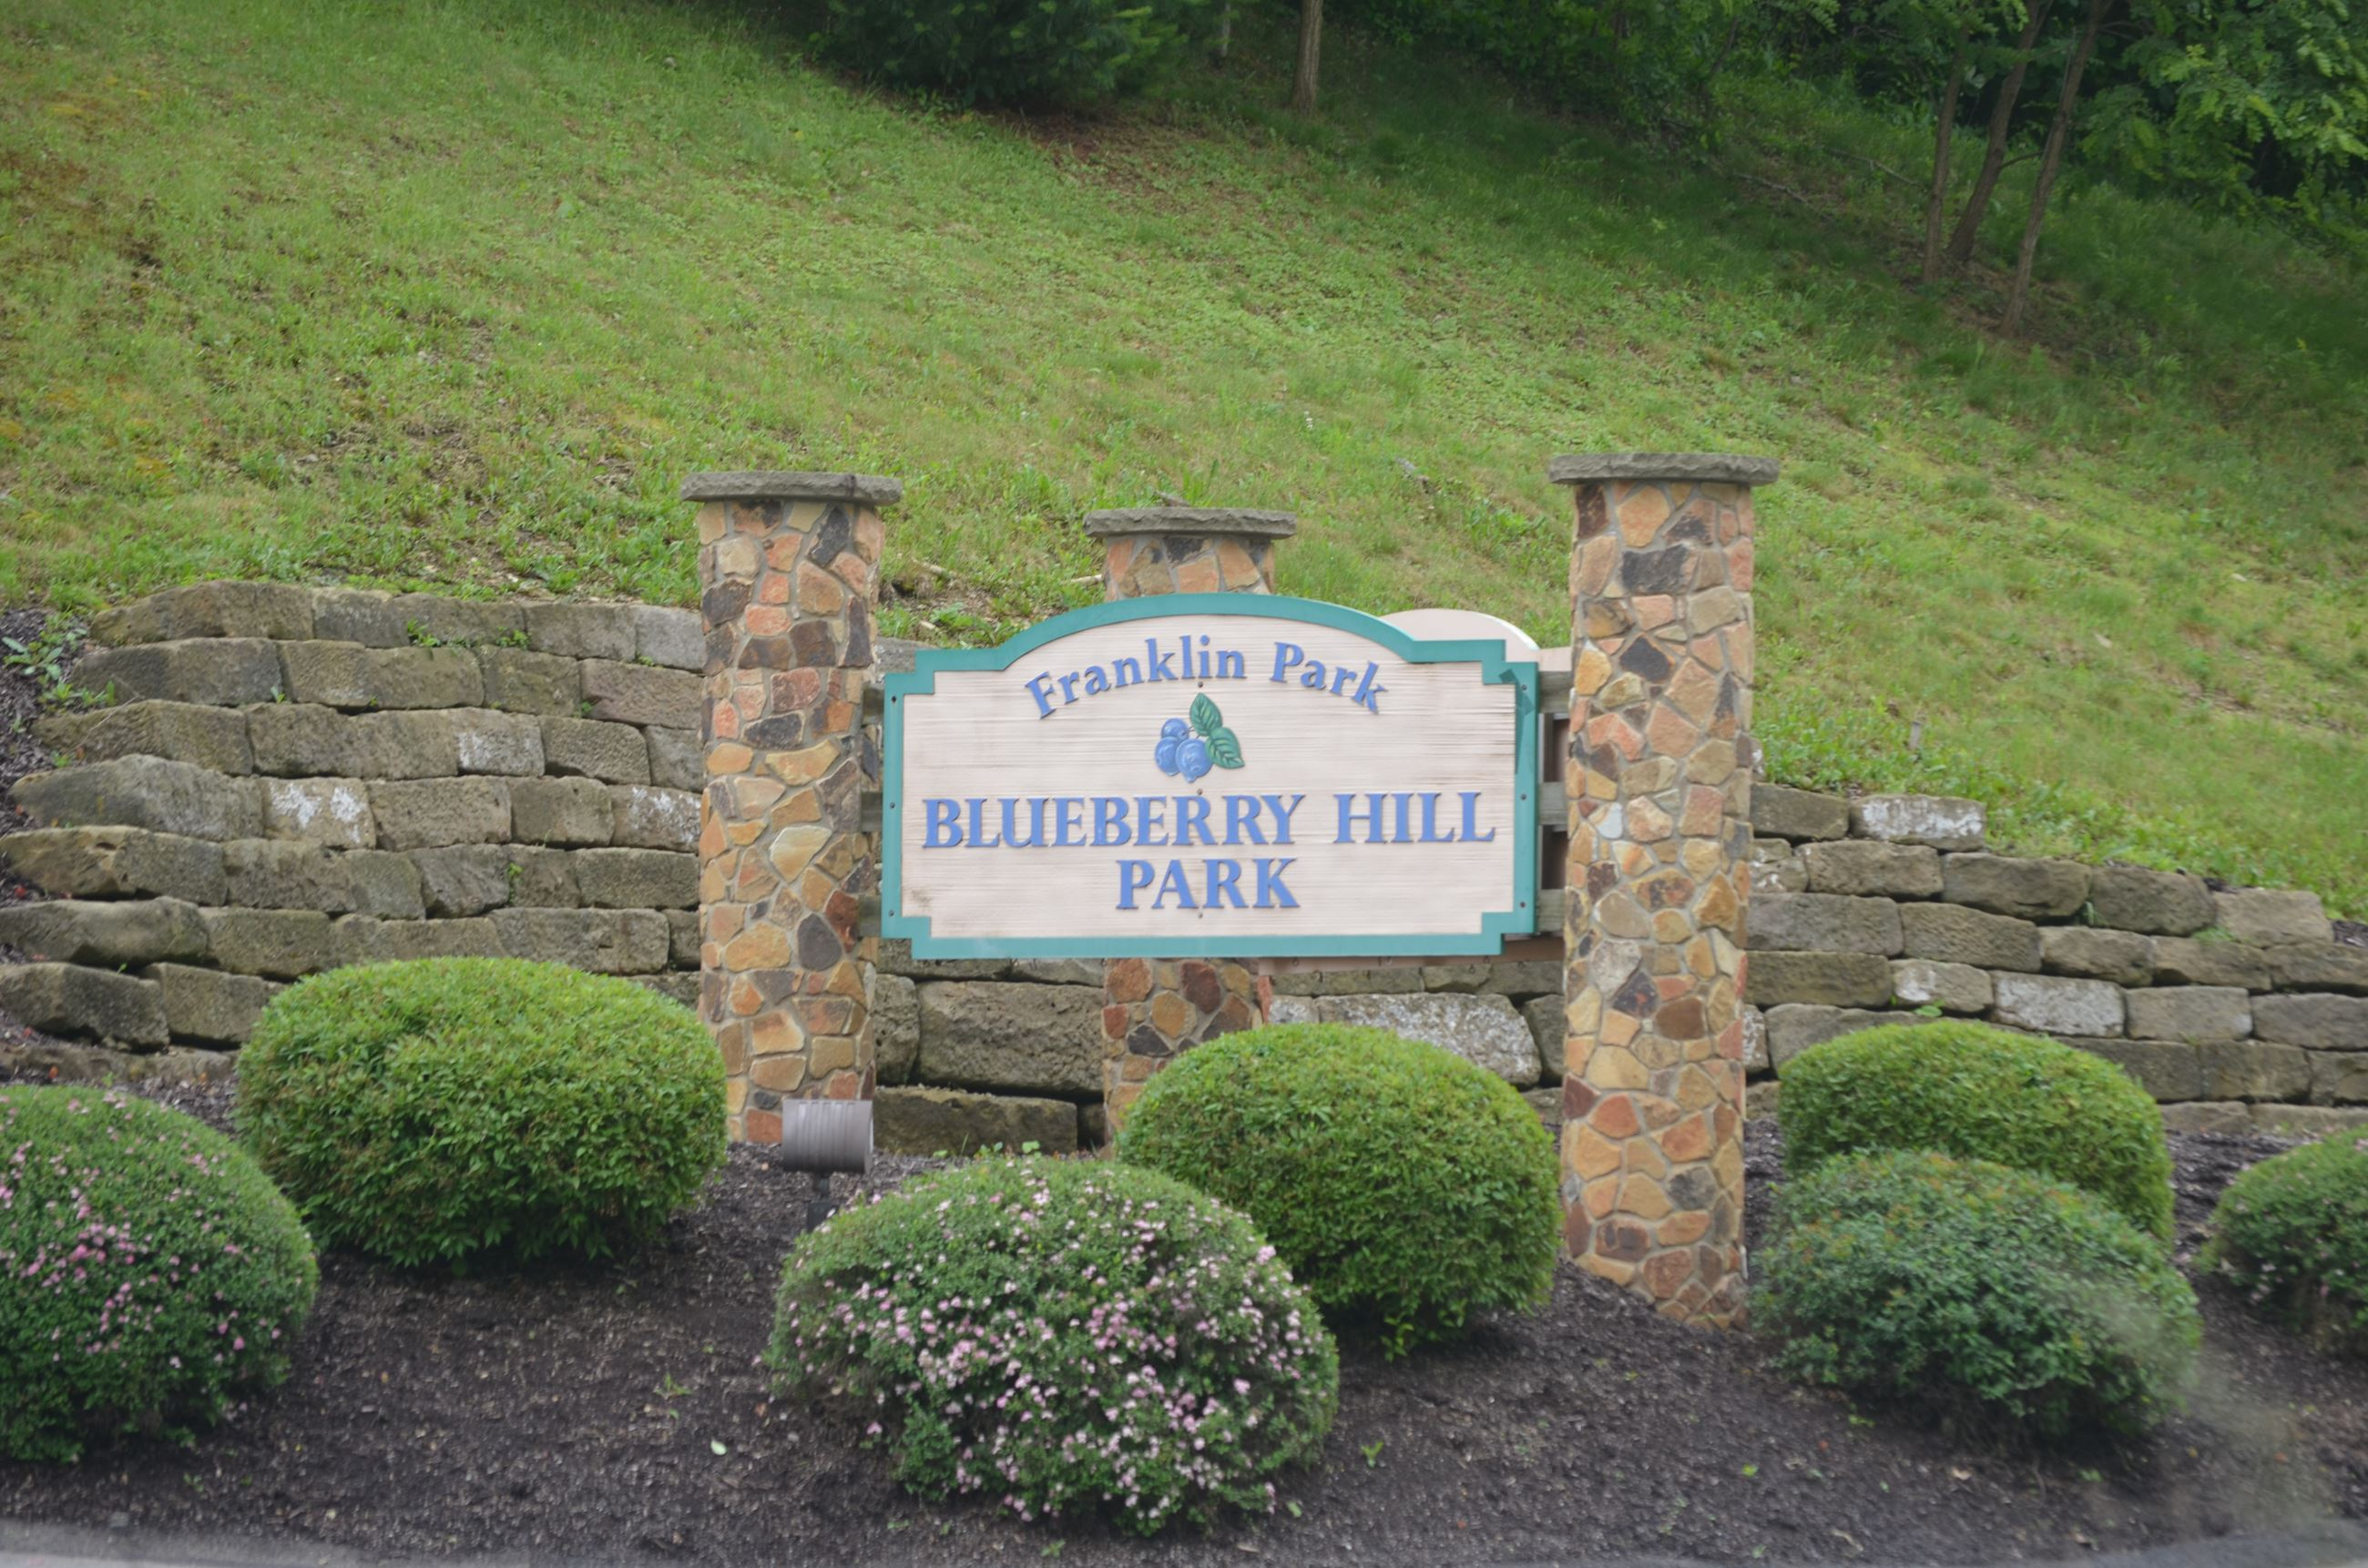 Blueberry Hill Park